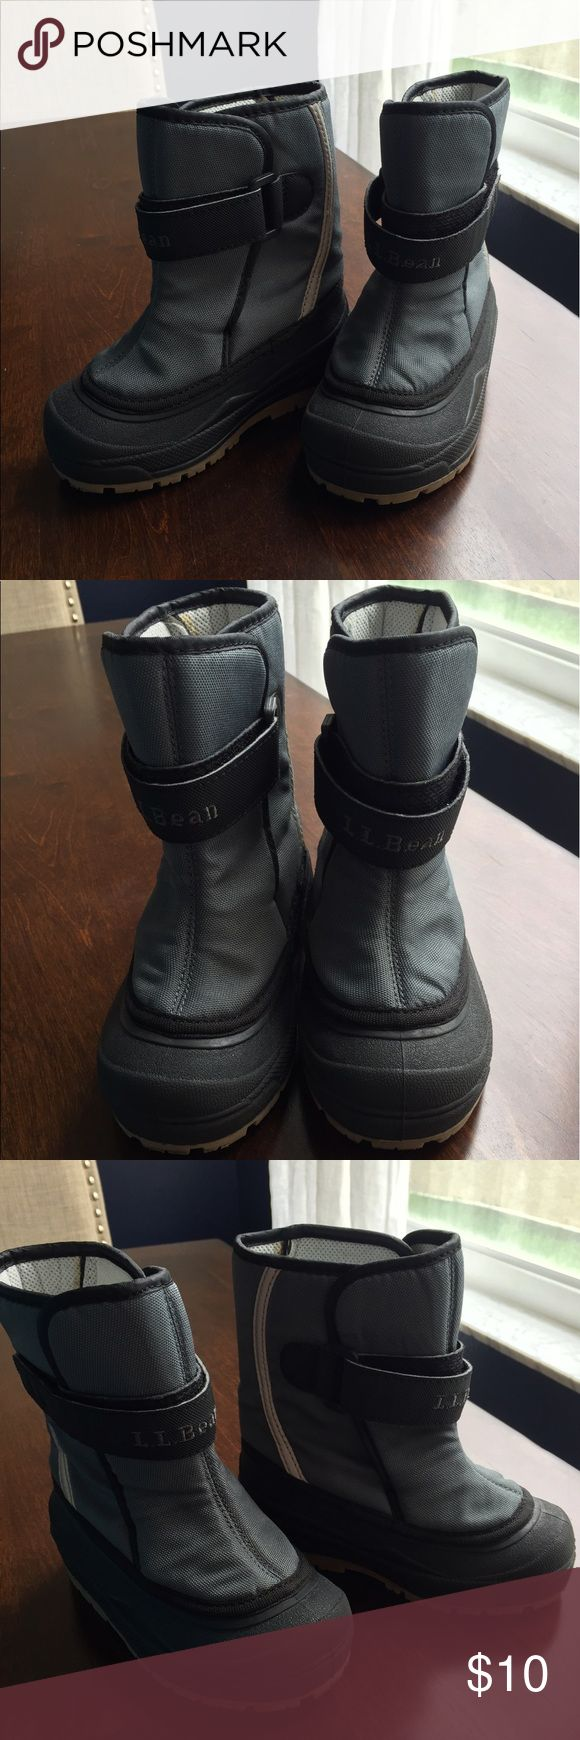 Toddlers winter boots LL Bean Winter Snow boots- brand new worn twice. L.L. Bean Shoes Rain & Snow Boots